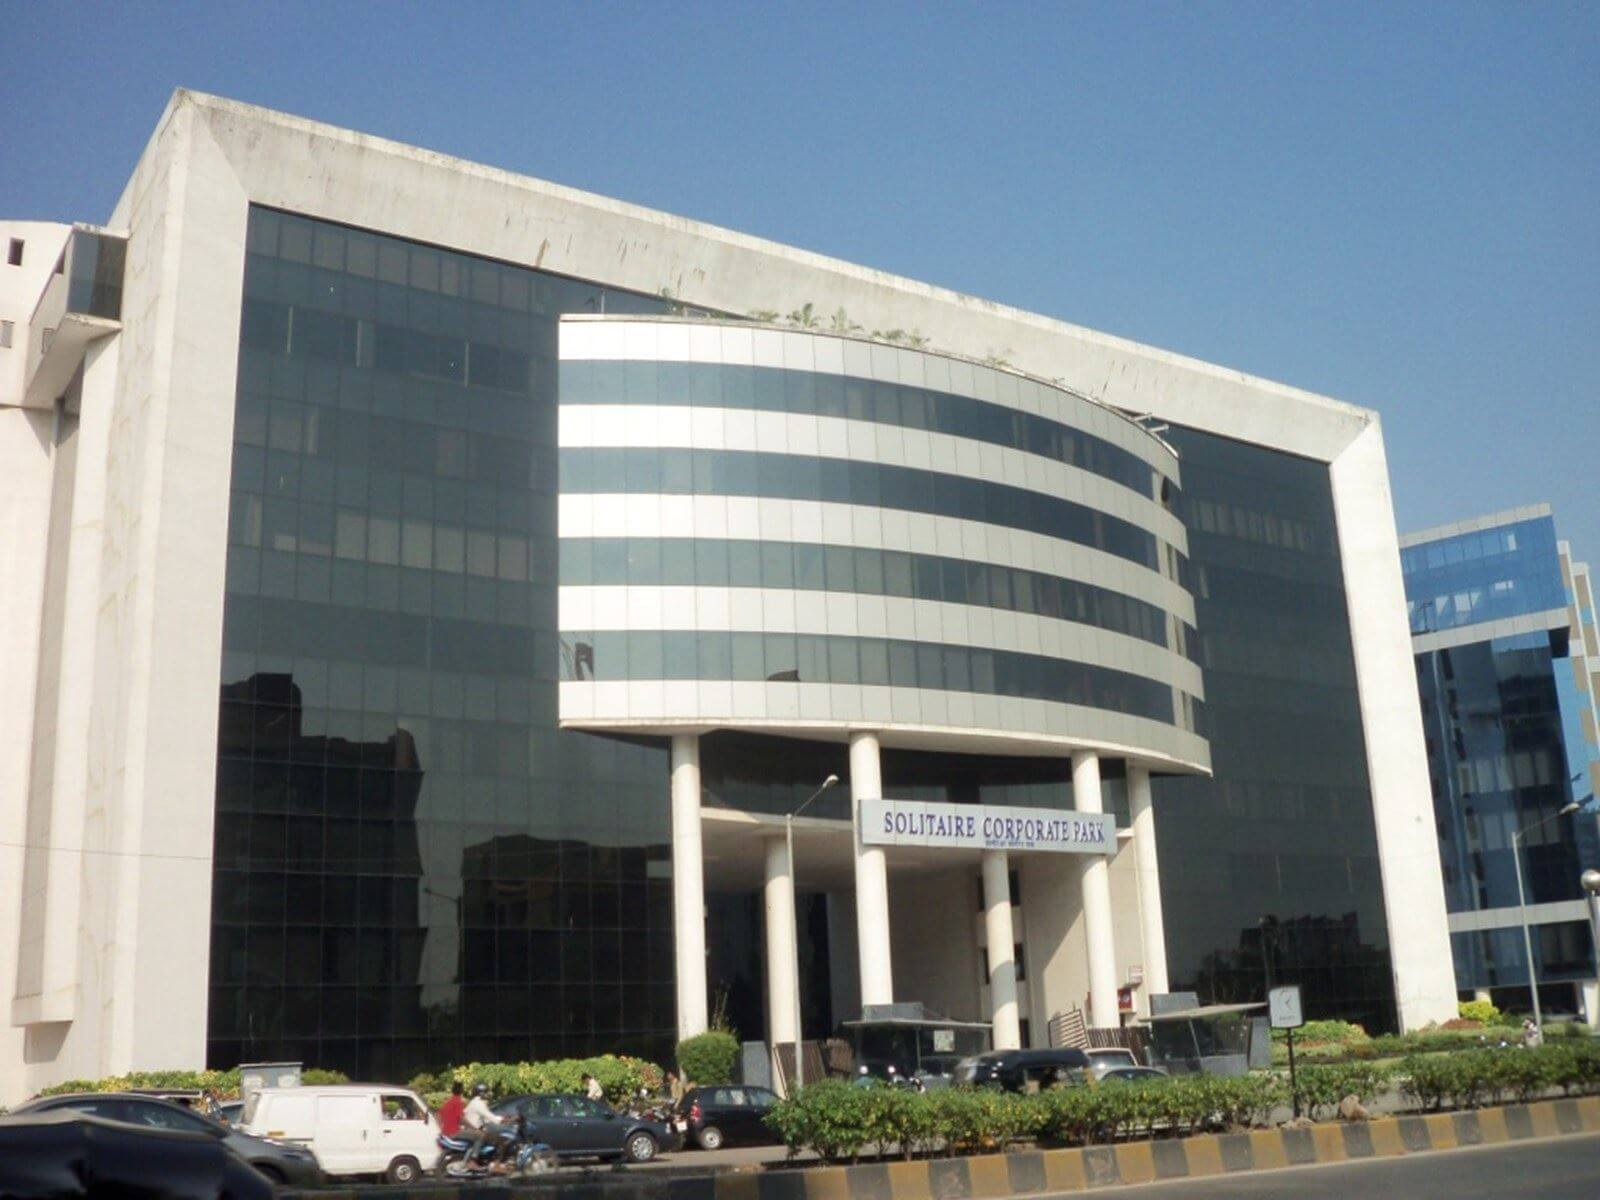 Office Space for Rent in Mumbai at Solitaire Corporate Park